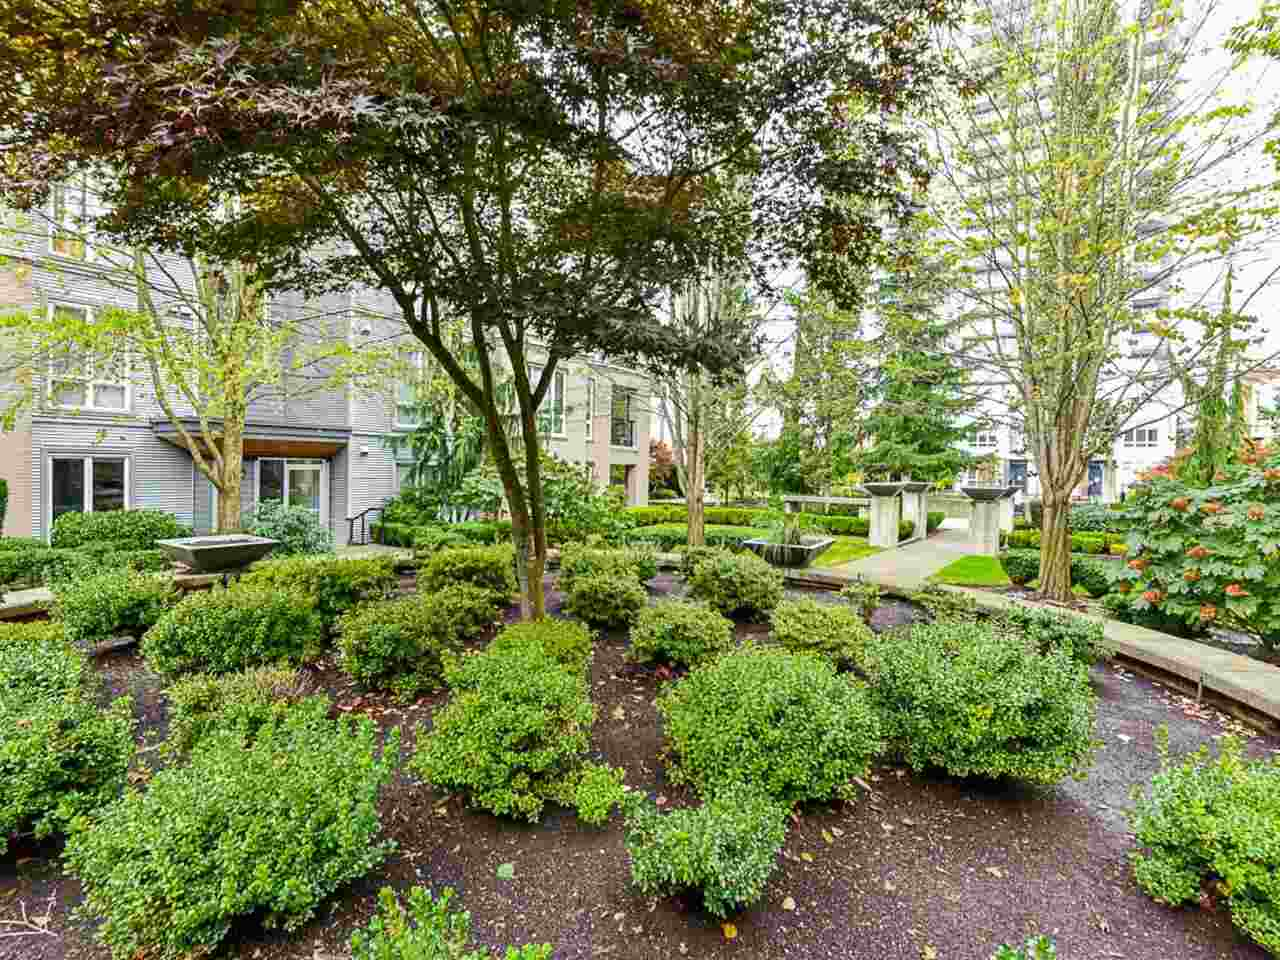 329 13321 102A AVENUE - Whalley Apartment/Condo for sale, 1 Bedroom (R2508611) - #19